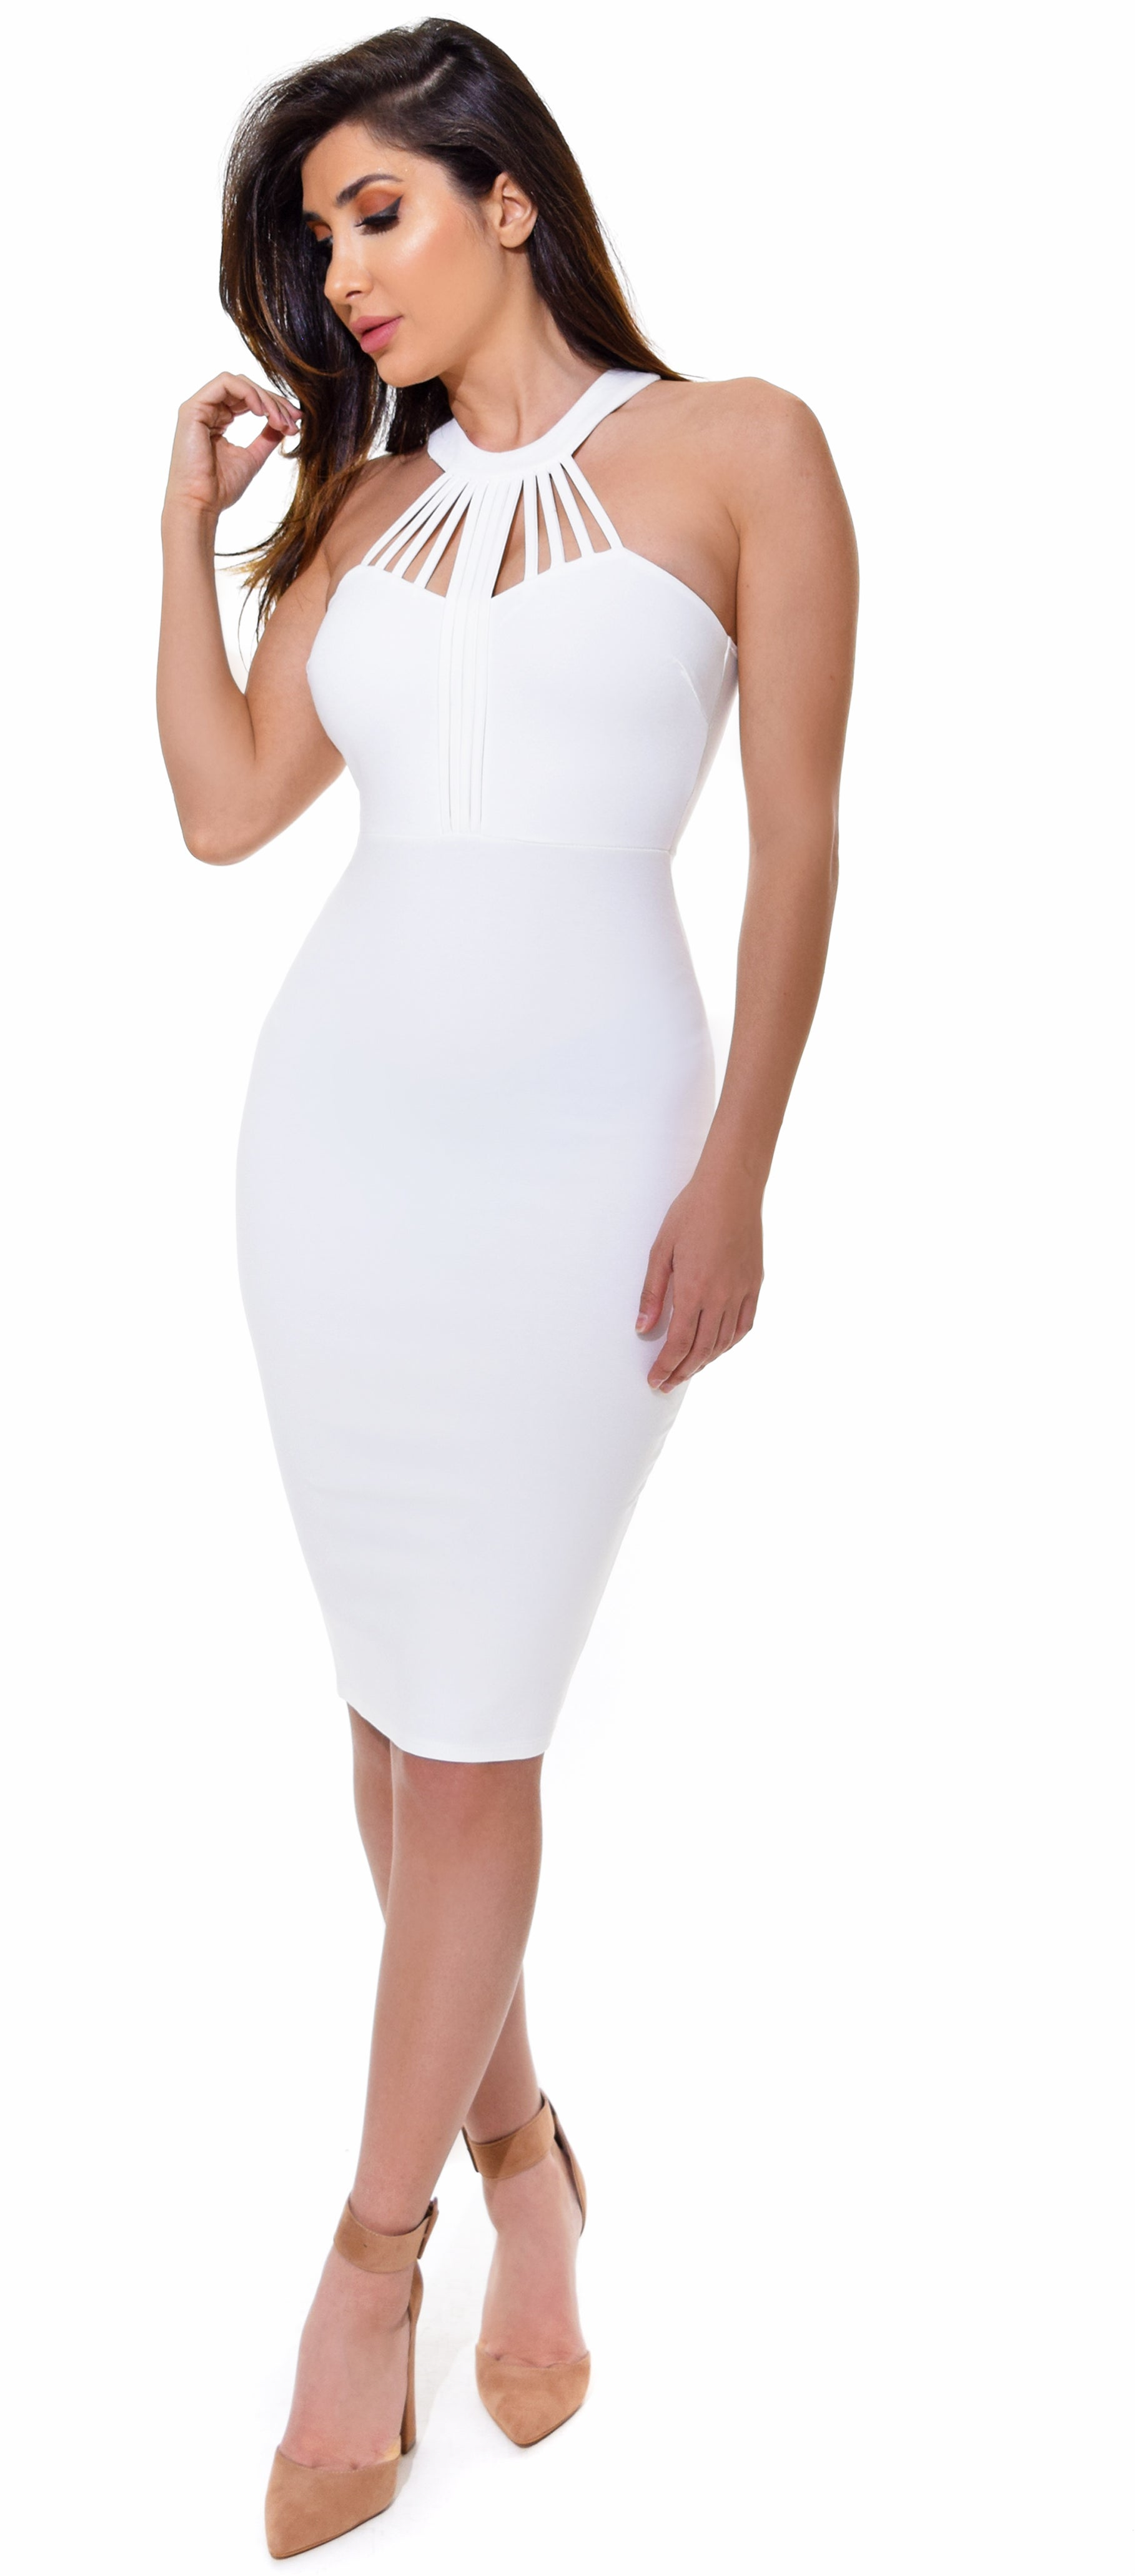 Giada White Strappy High Neck Dress